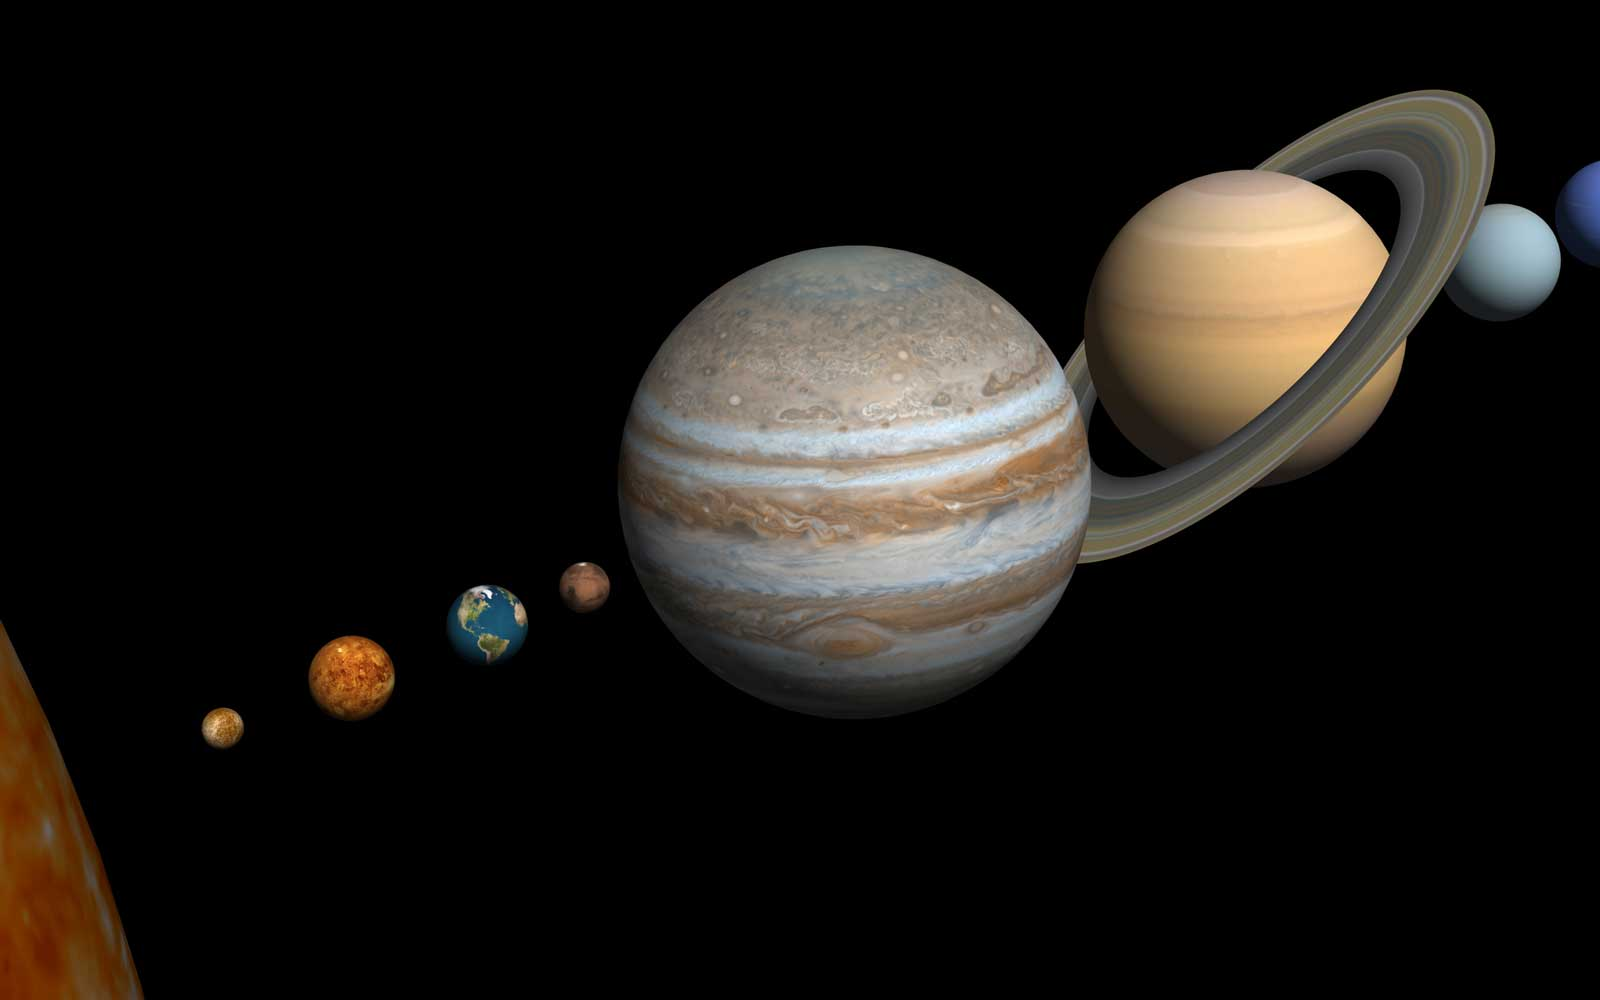 Artist concept of planets aligned in the solar system